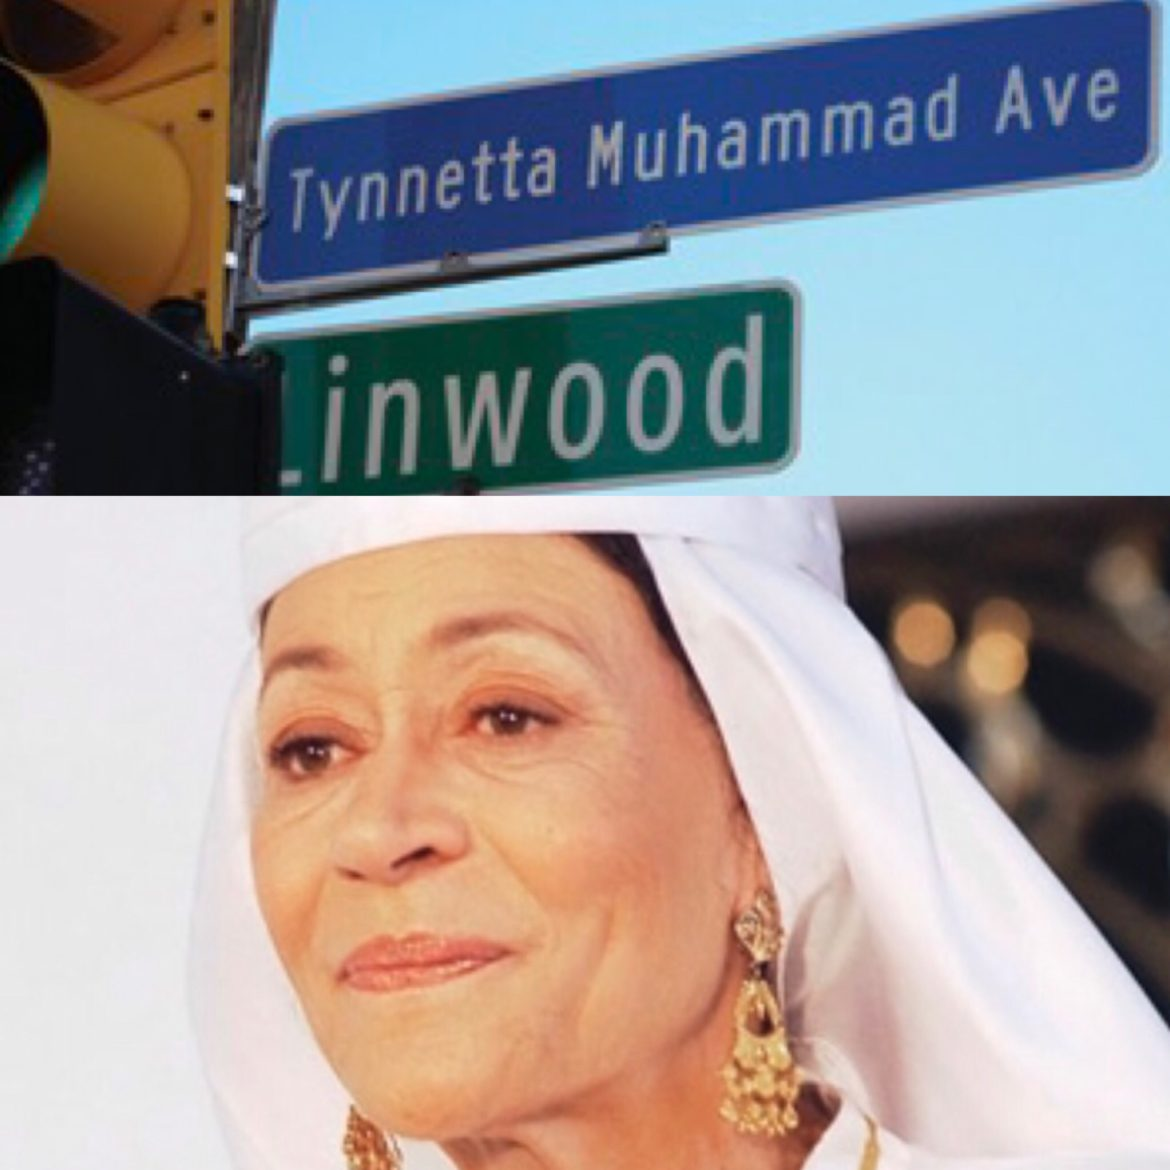 """Tynnetta Muhammad Avenue,"" named in tribute to writer, artist and scholar Mother Tynnetta Muhammad"